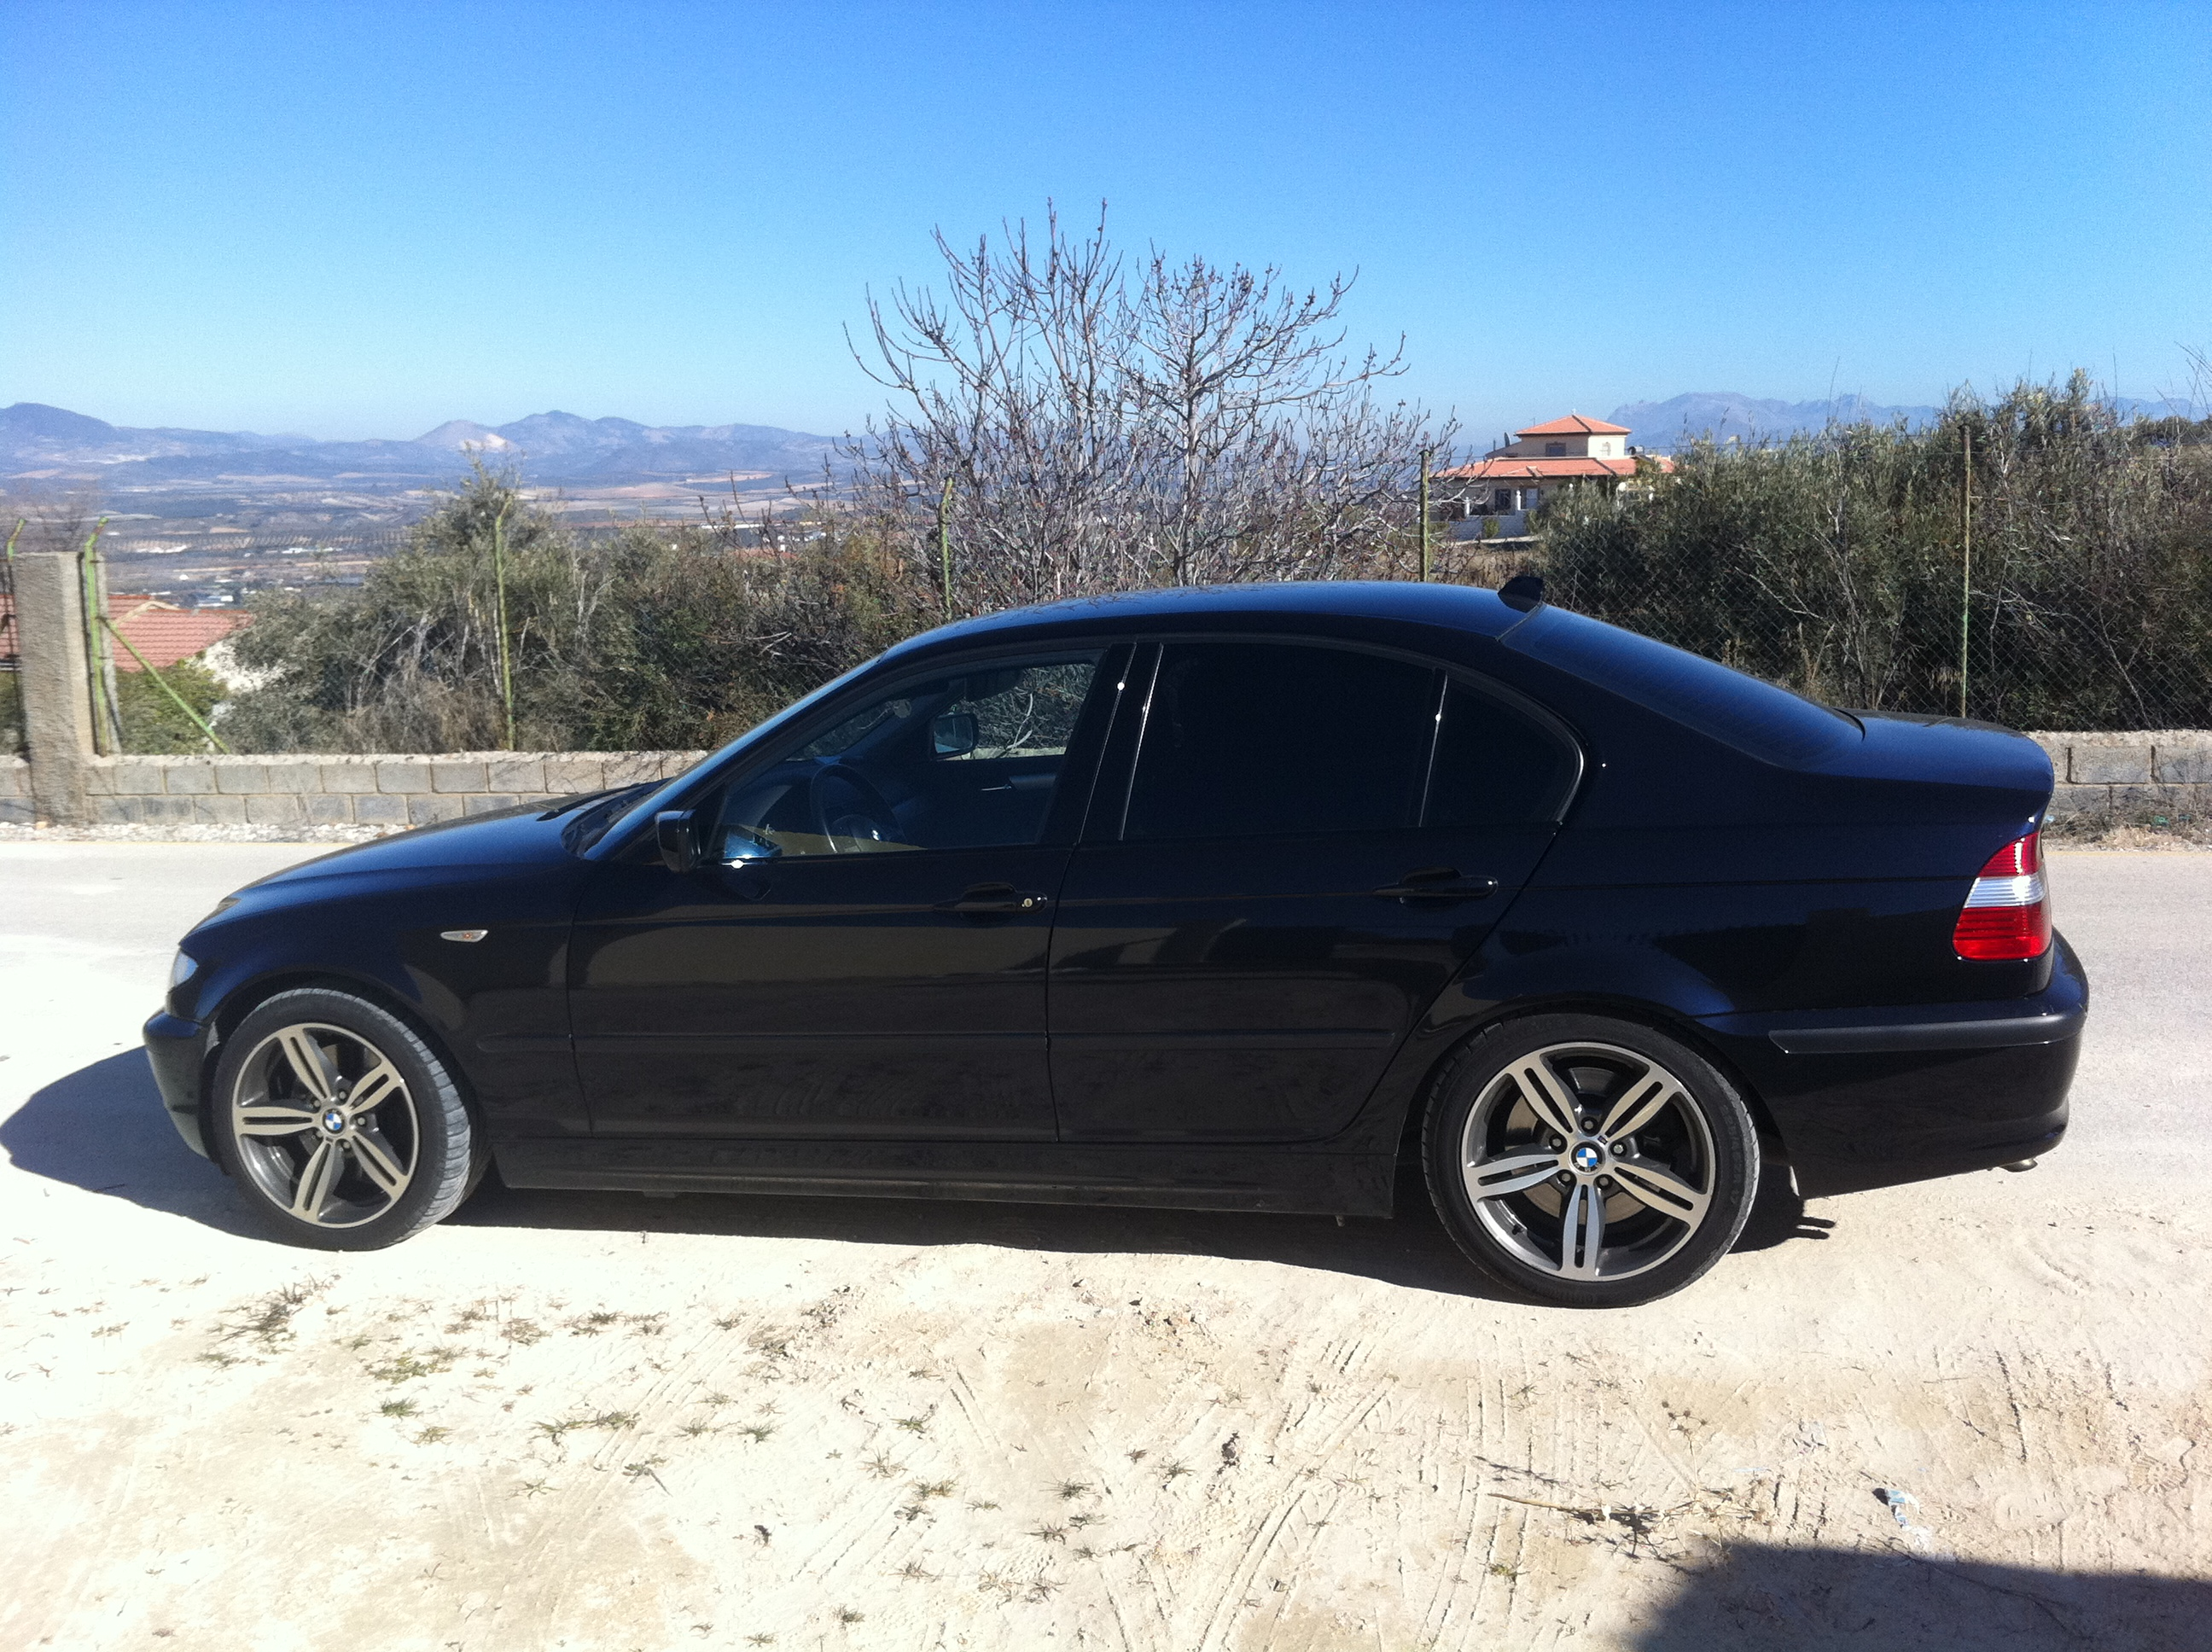 bmw 330d 2003 review amazing pictures and images look at the car. Black Bedroom Furniture Sets. Home Design Ideas